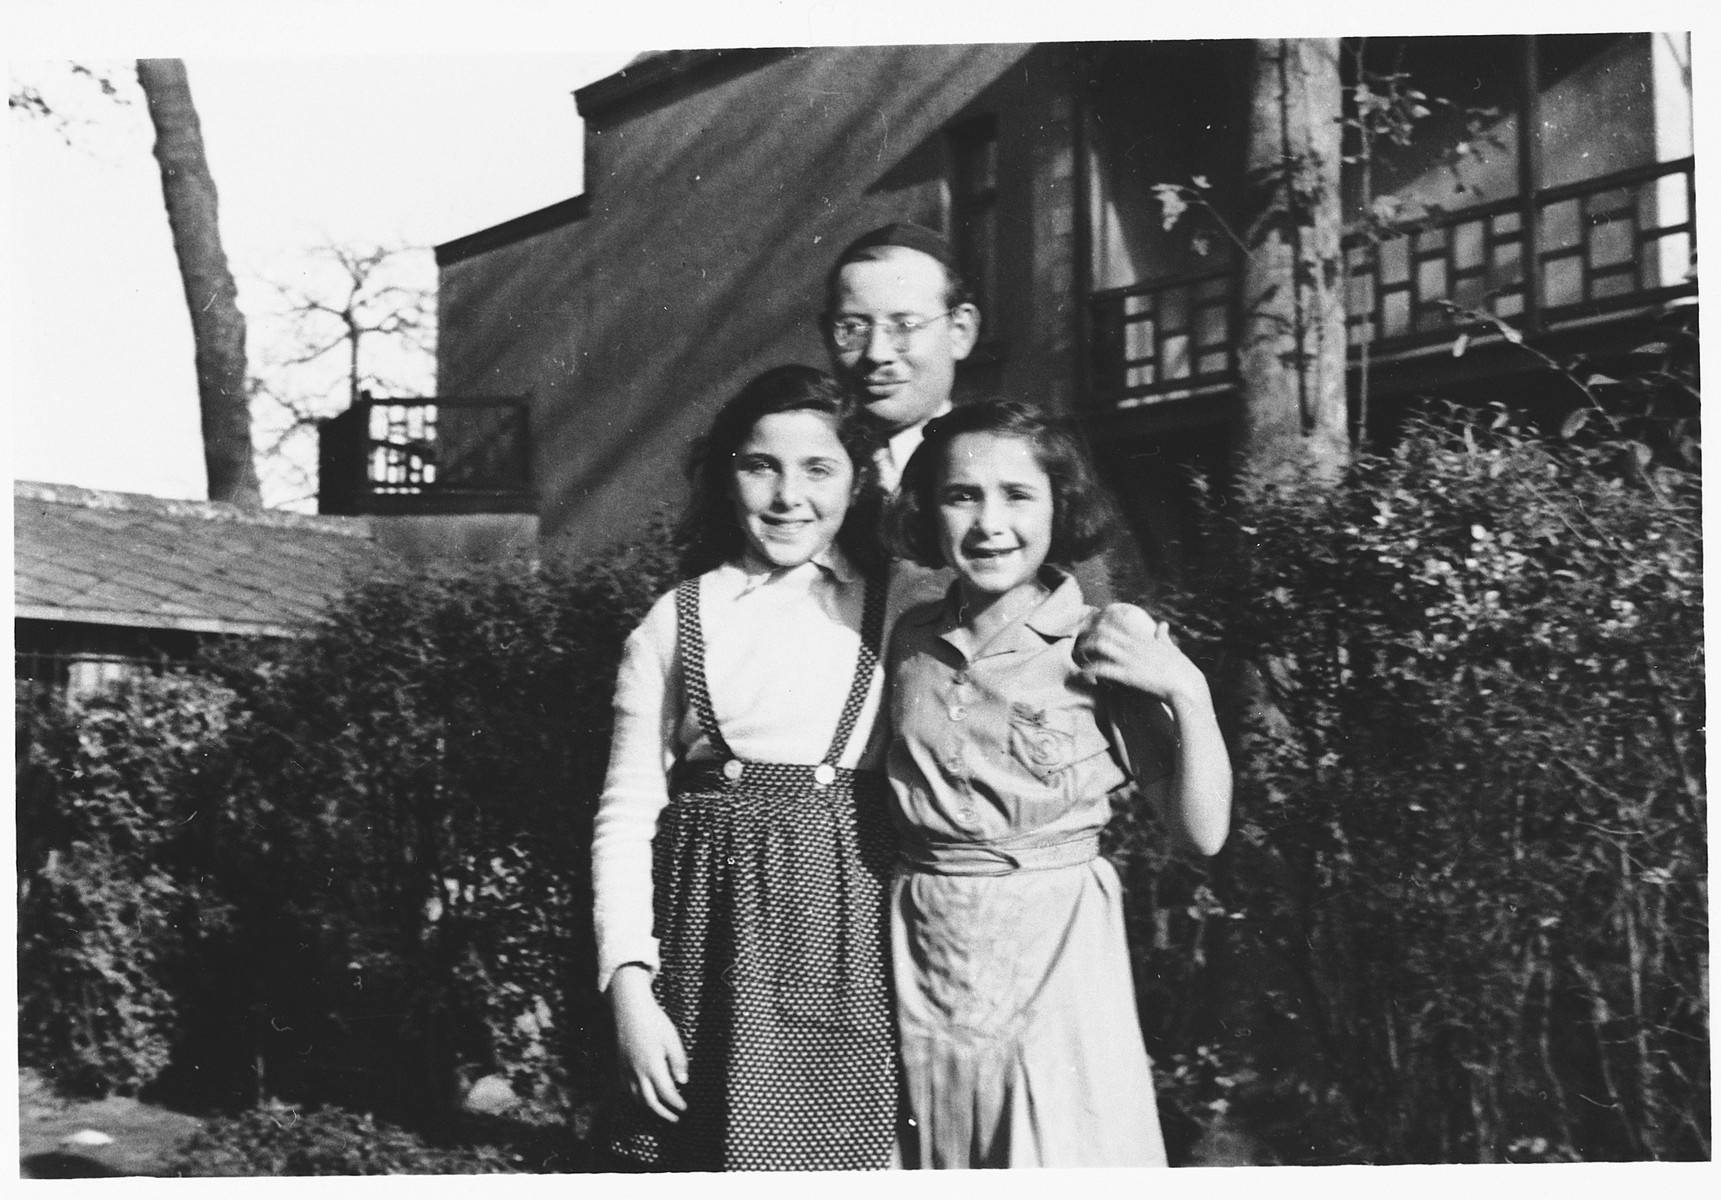 Jonas Tiefenbrunner poses with two girls outside the Mariaburg DP children's home near Antwerp.  Rozette Poler is on the right.